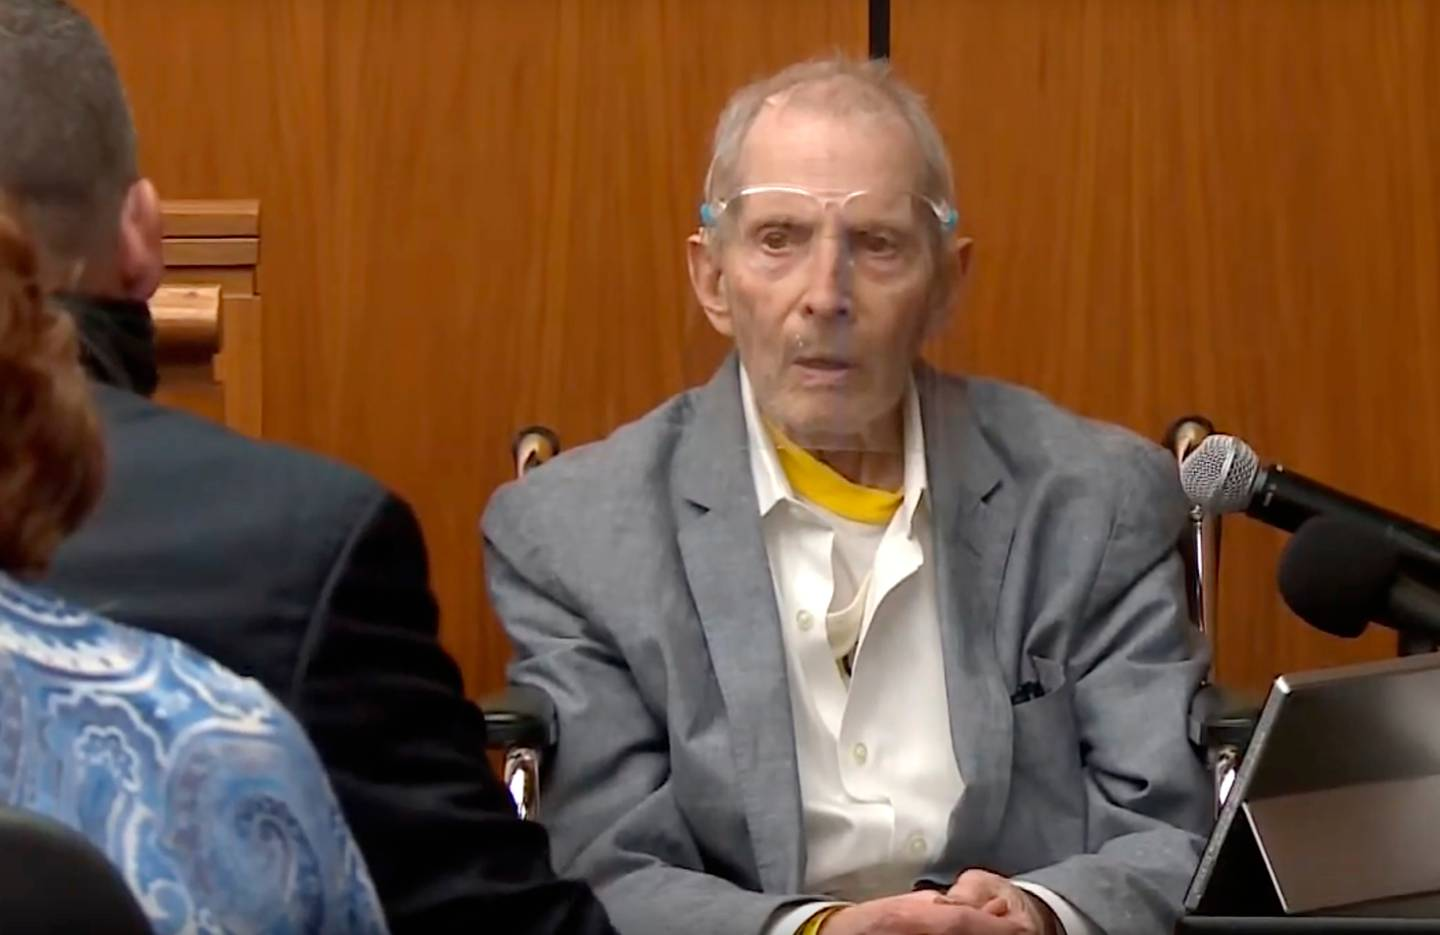 Real estate heir Robert Durst answers questions while taking the stand during his murder trial in August 2021. Photo / AP